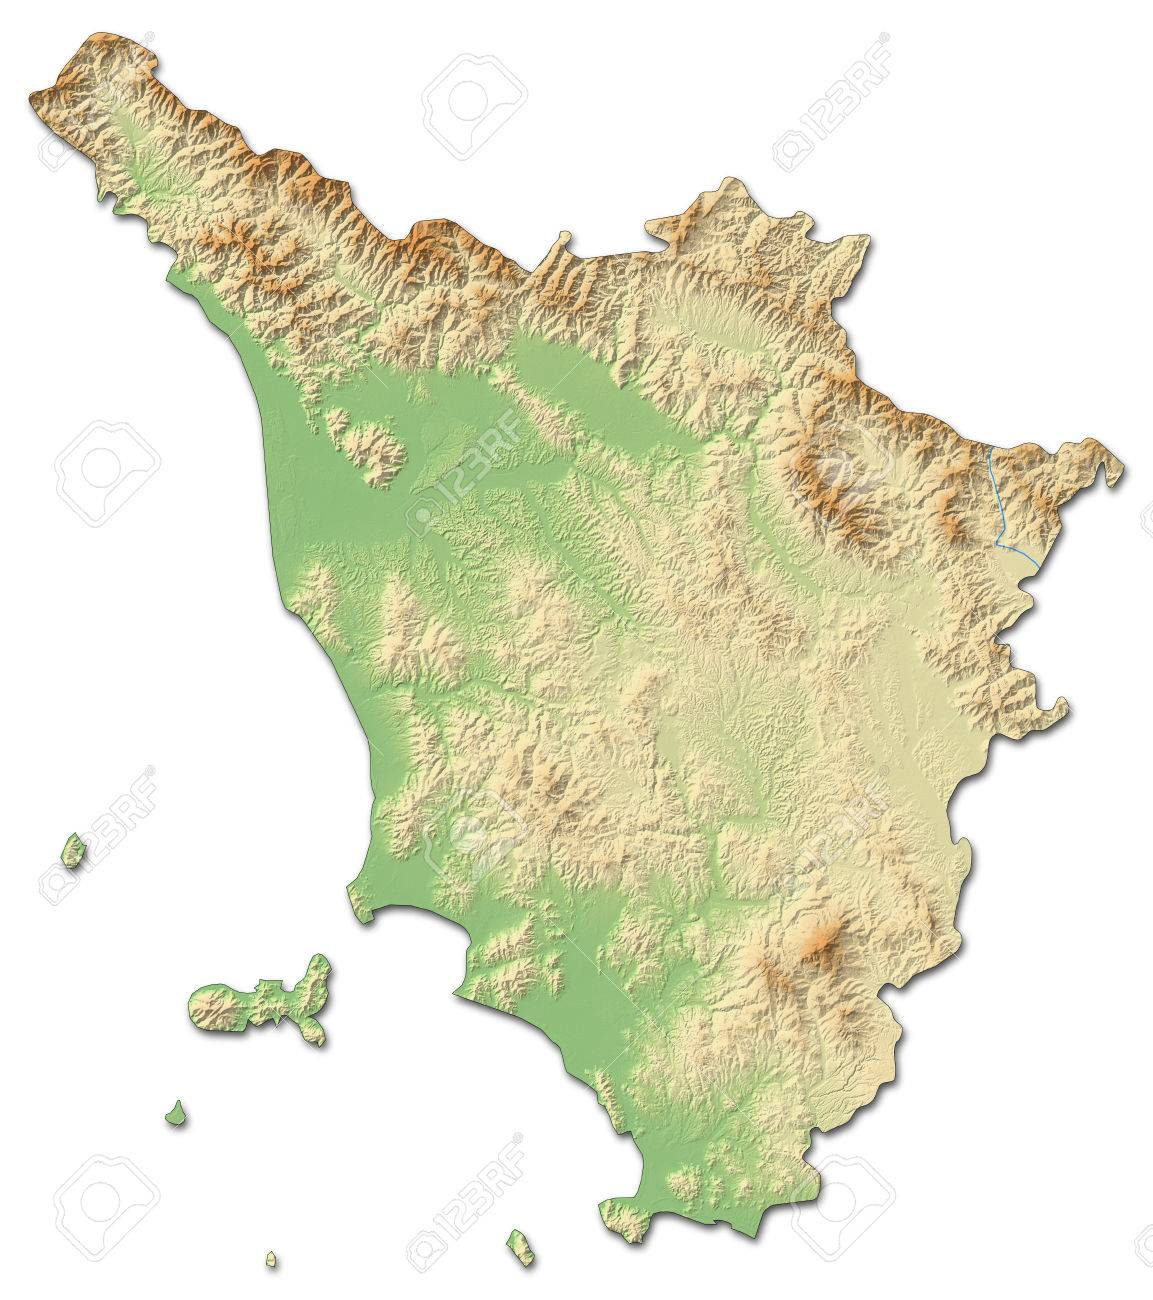 Relief Map Of Tuscany A Province Of Italy With Shaded Relief